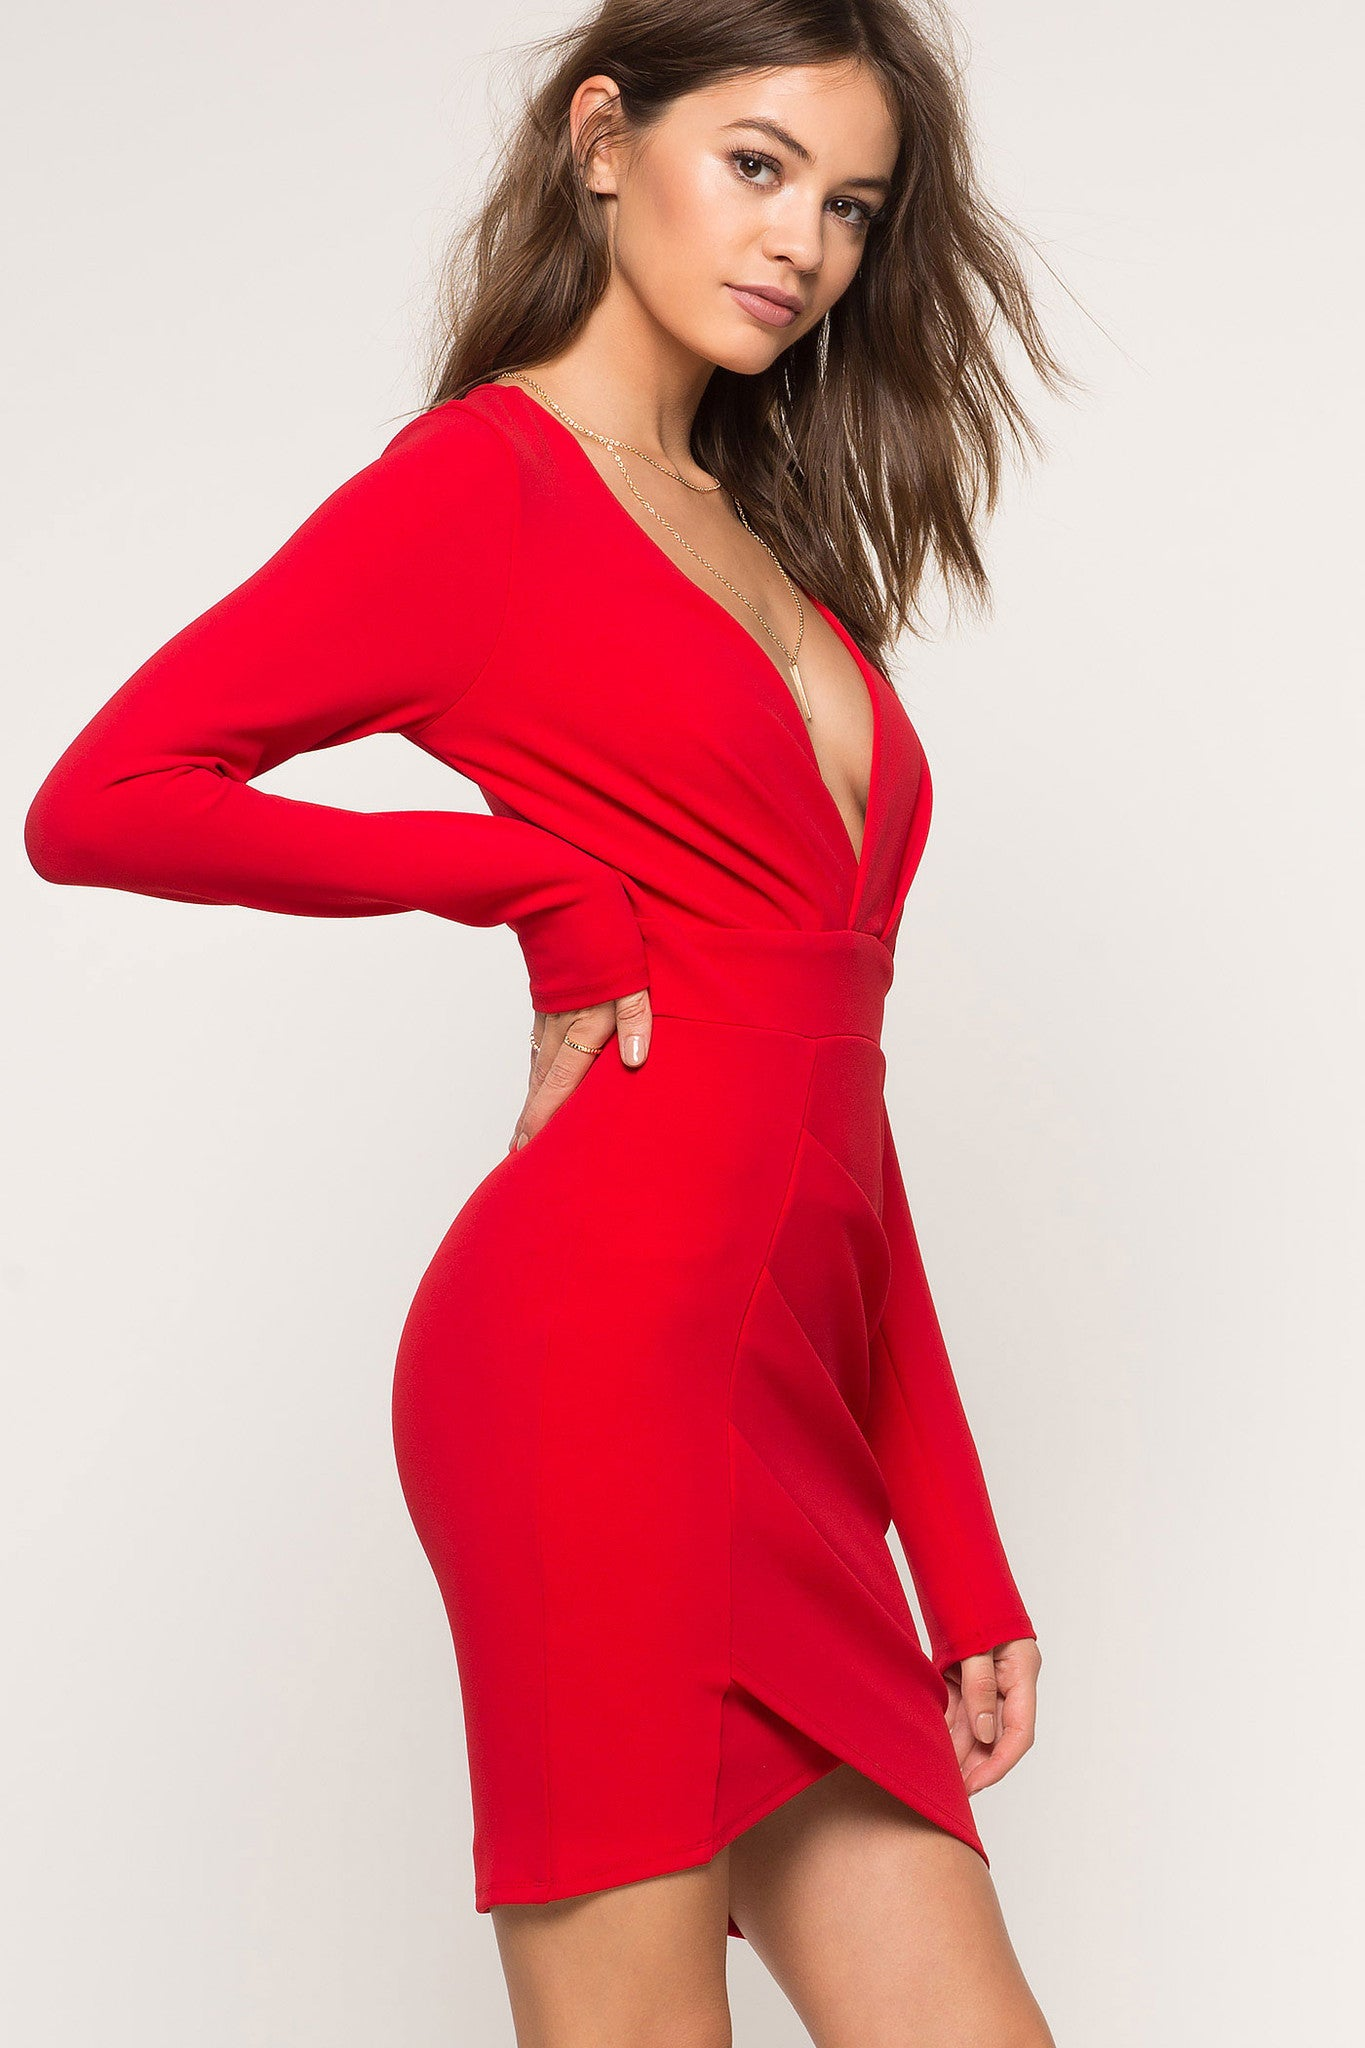 MEMDALET | Long Sleeve Deep V-neck Red Party Dress - Red Surplice ...